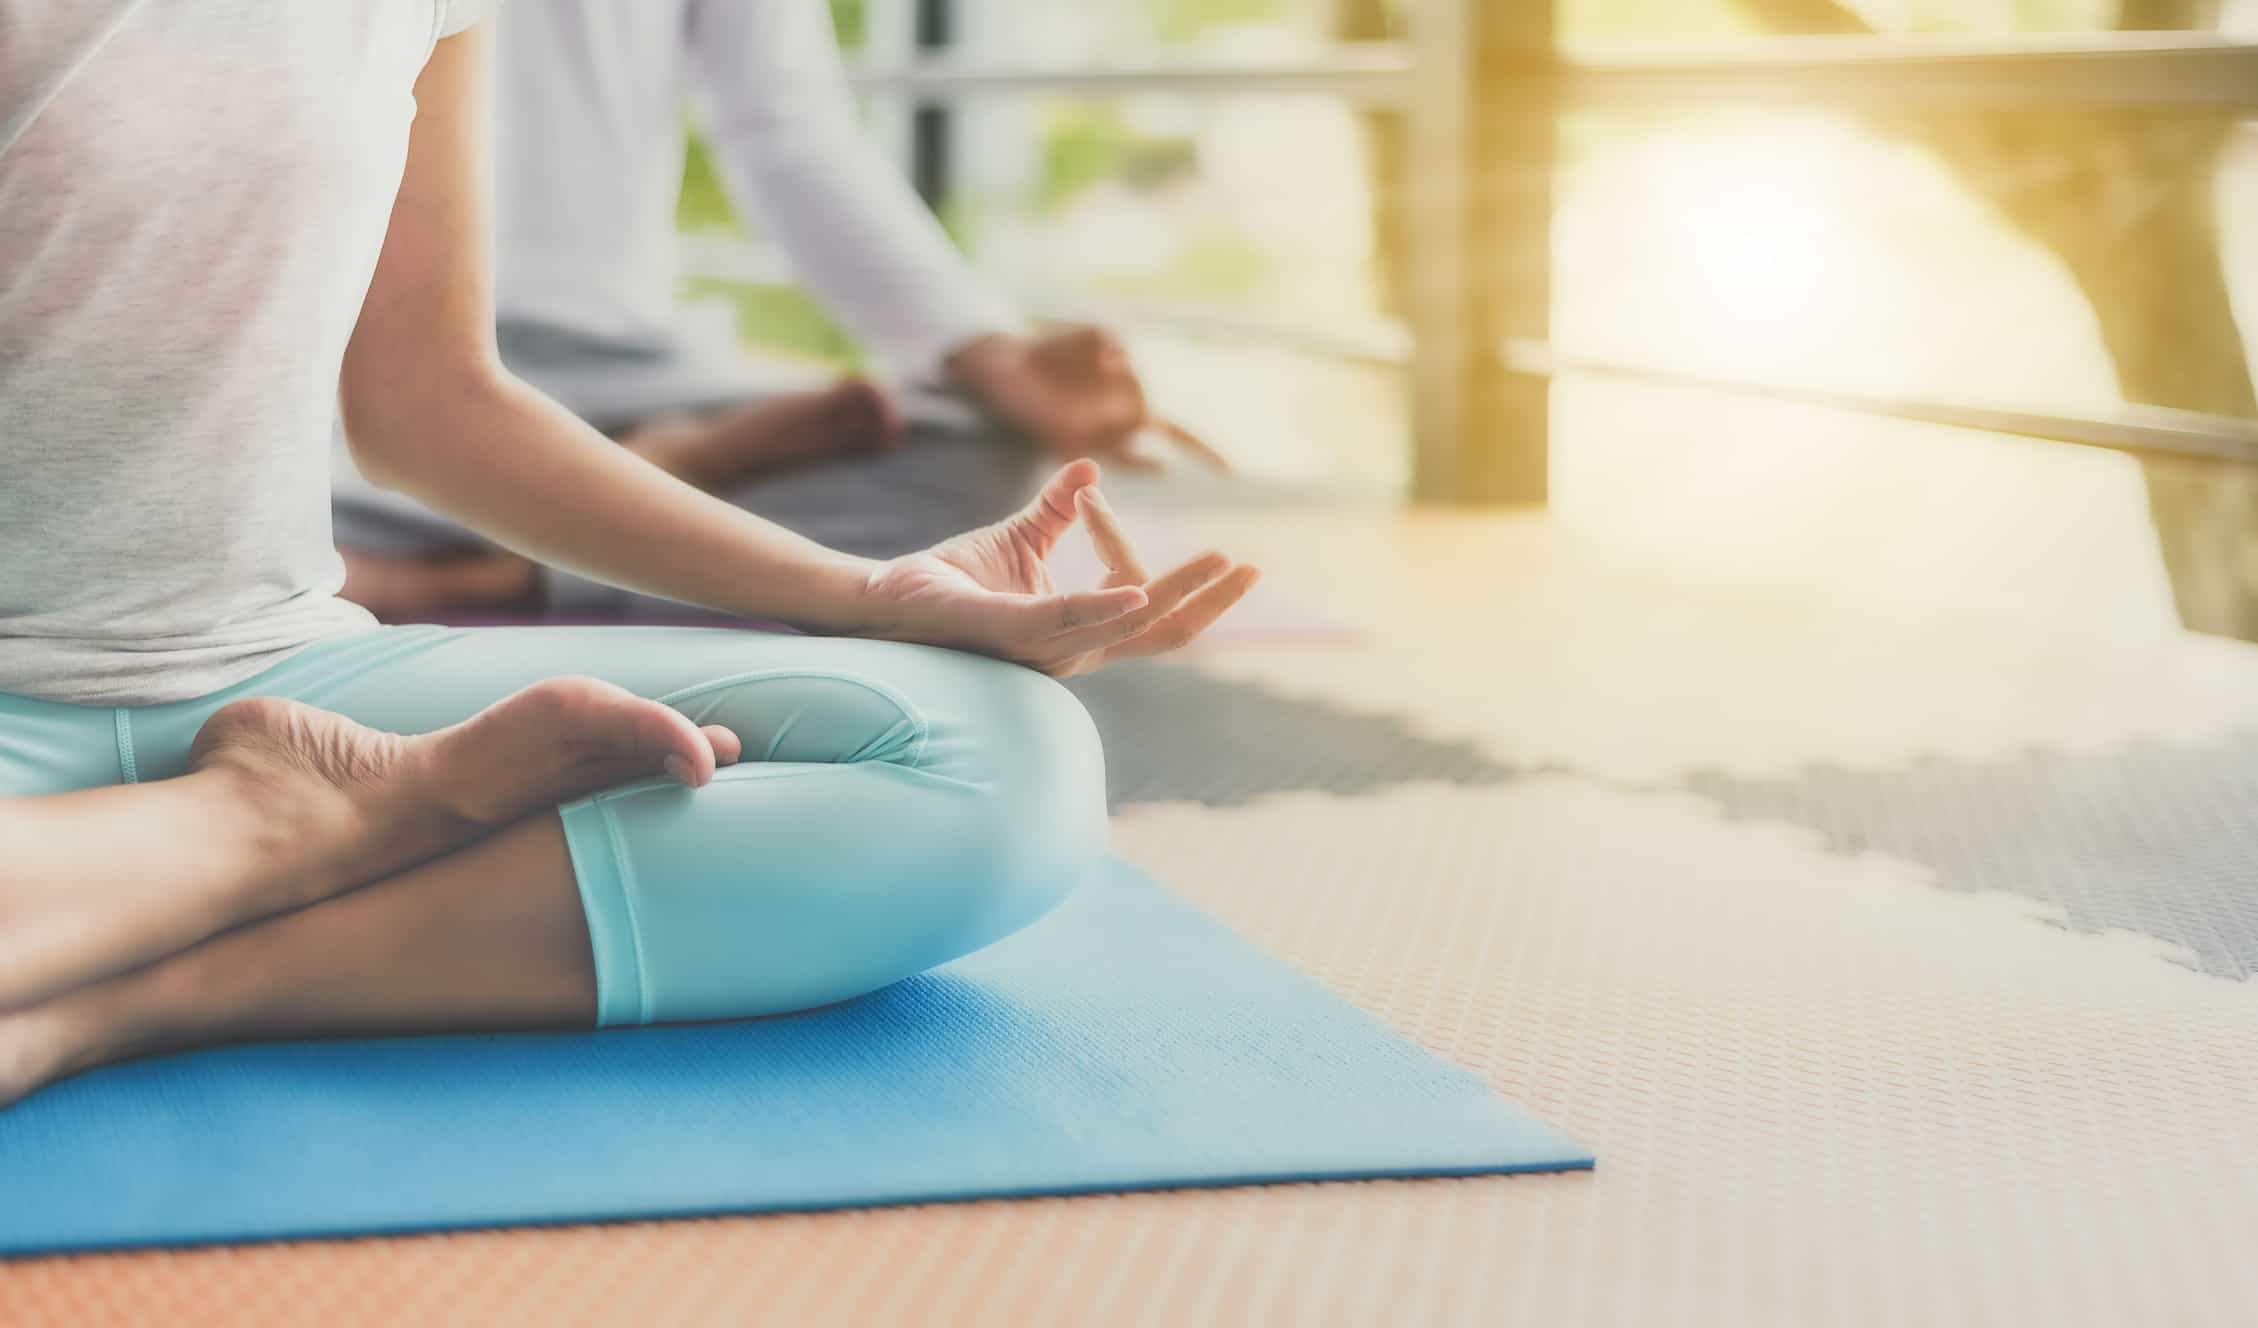 How to Reduce Stress in 5 Simple Steps